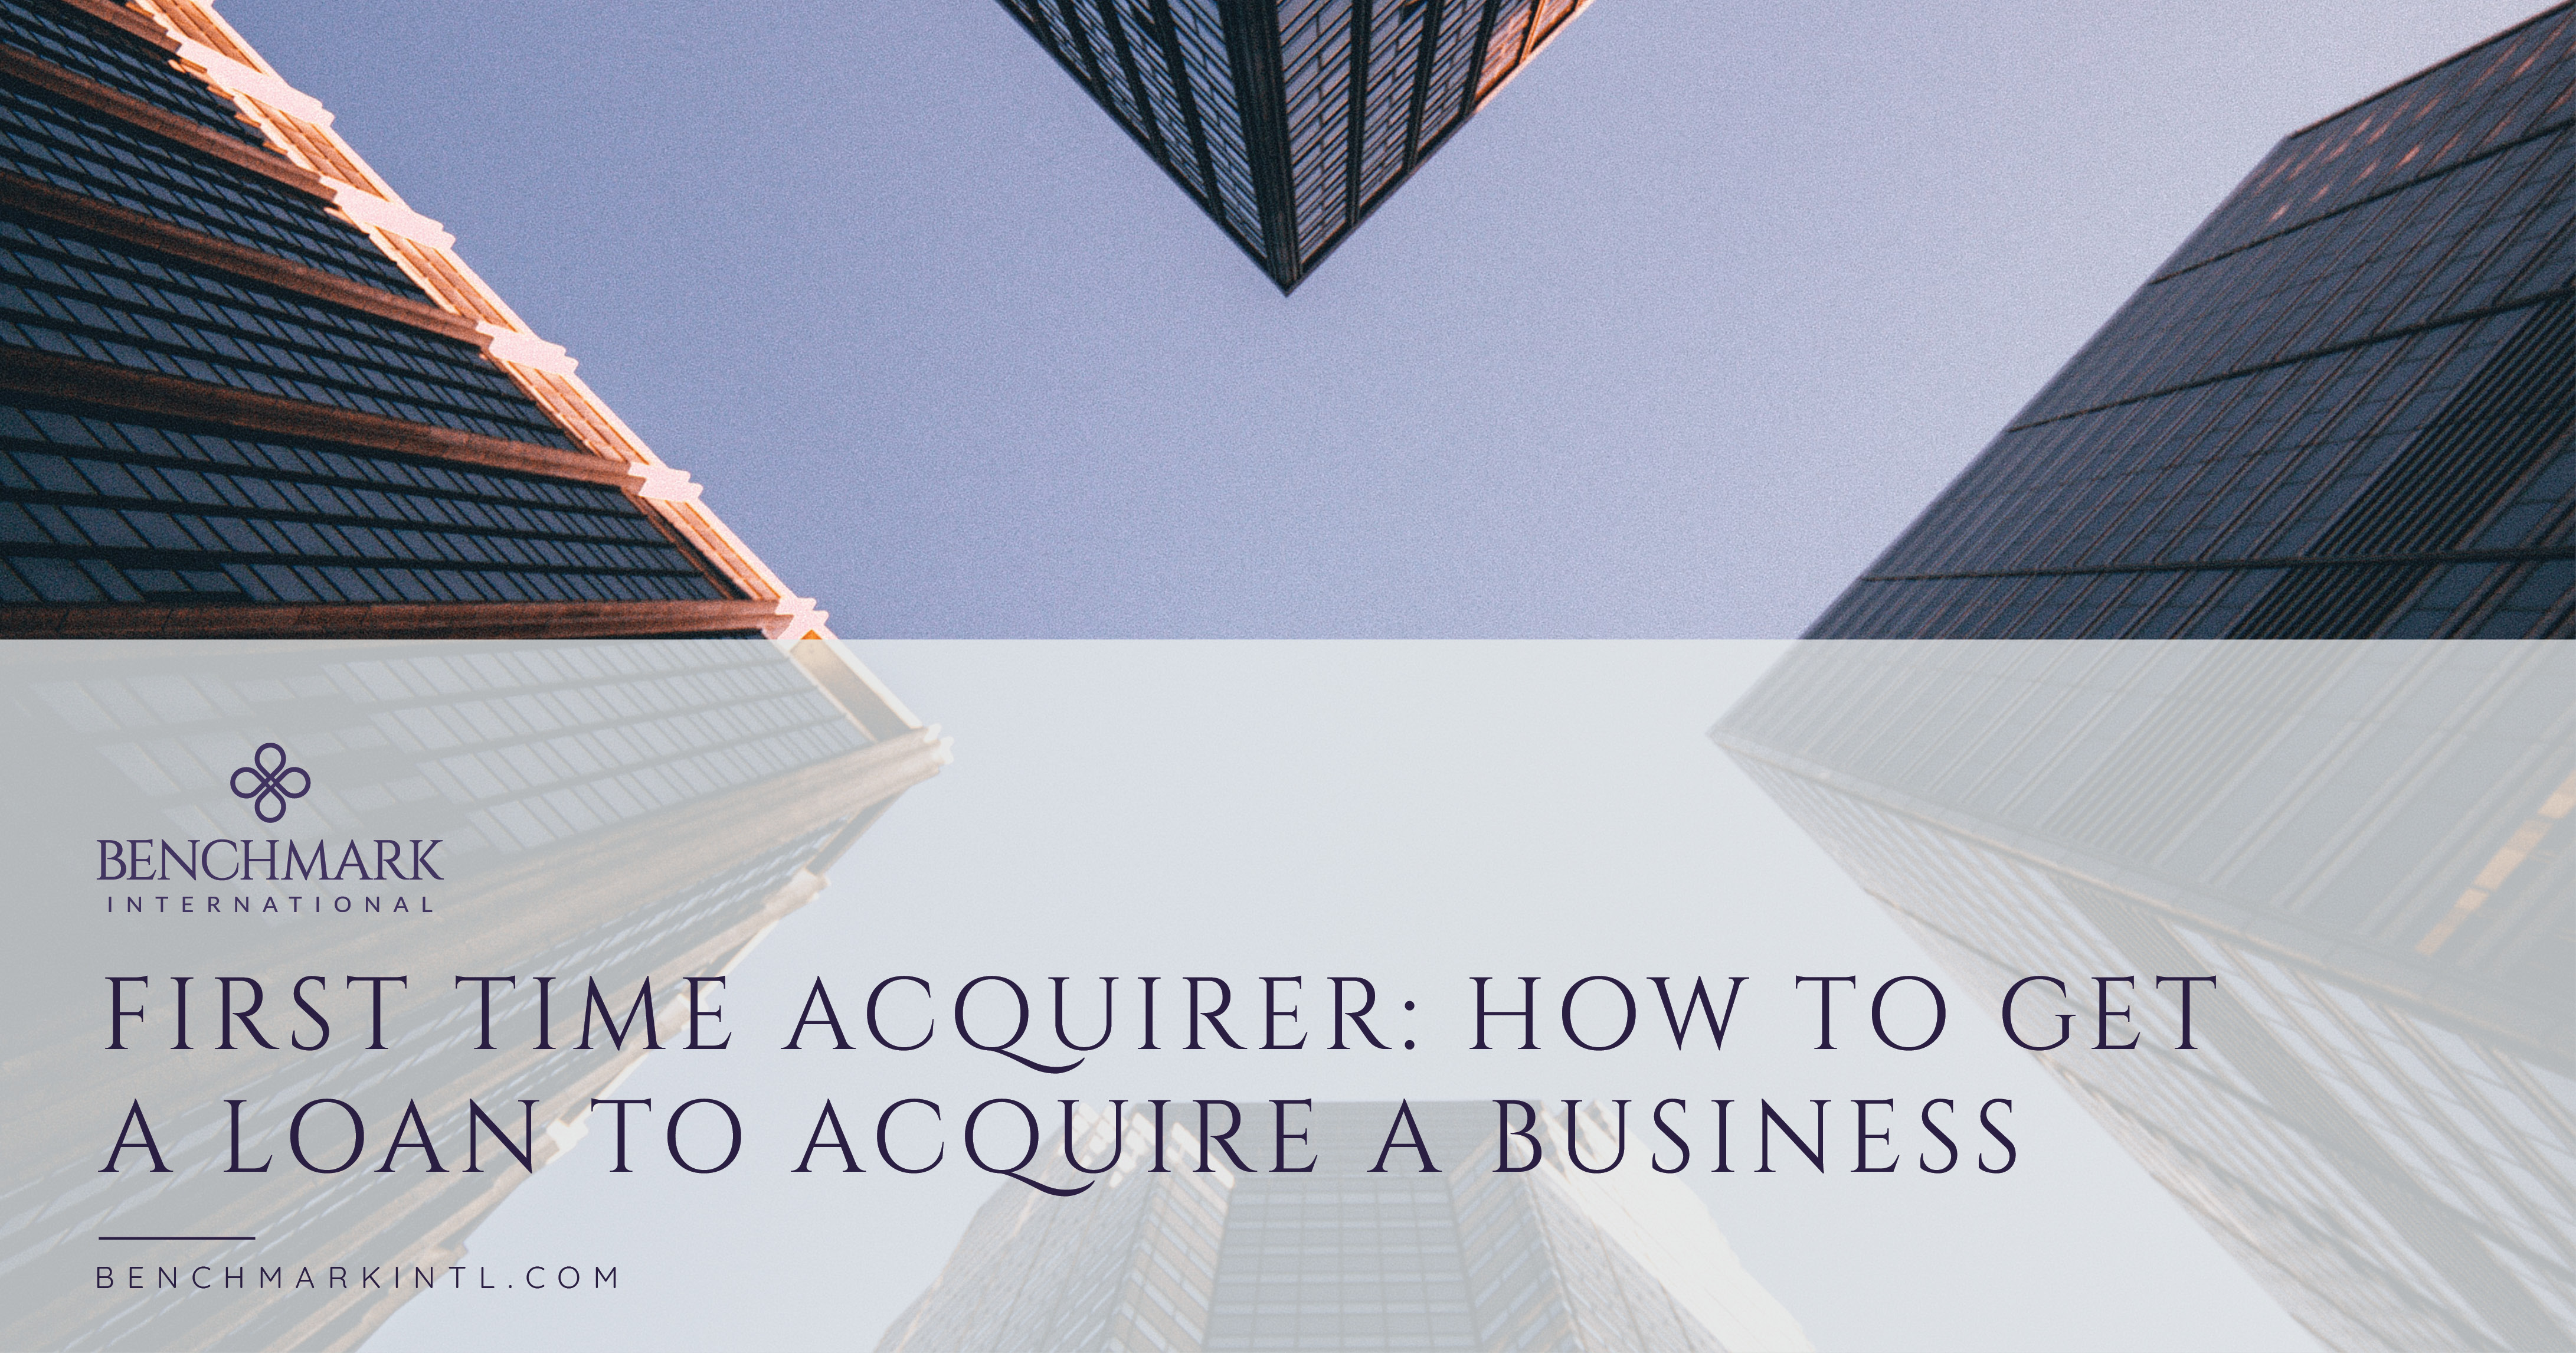 First Time Acquirer: How to Get a Loan to Acquire a Business